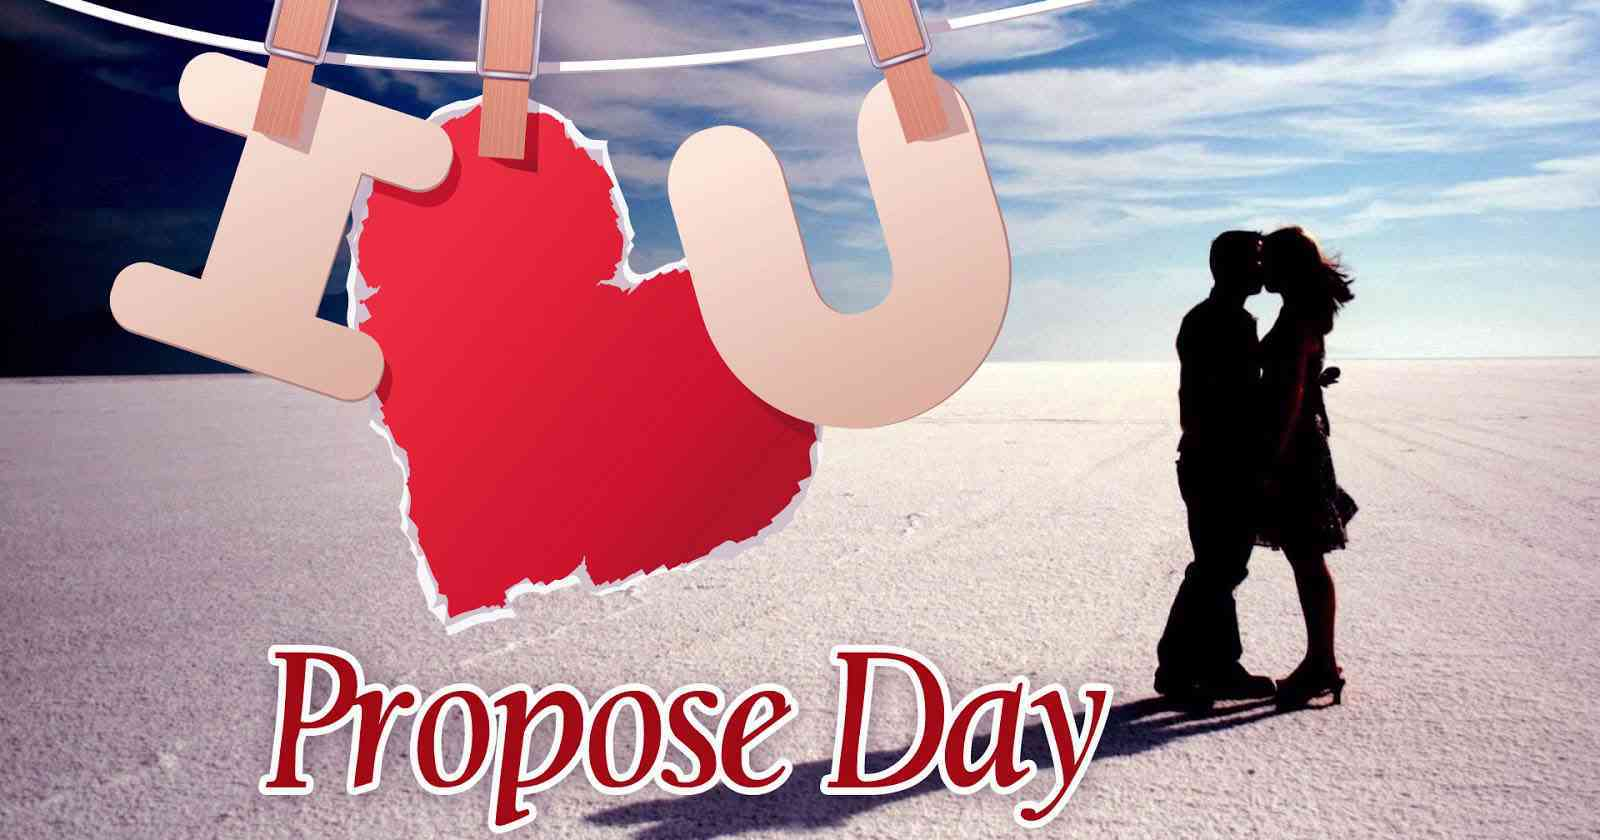 Happy Propose Day Quotes Romantic Shayari Funny Messages For